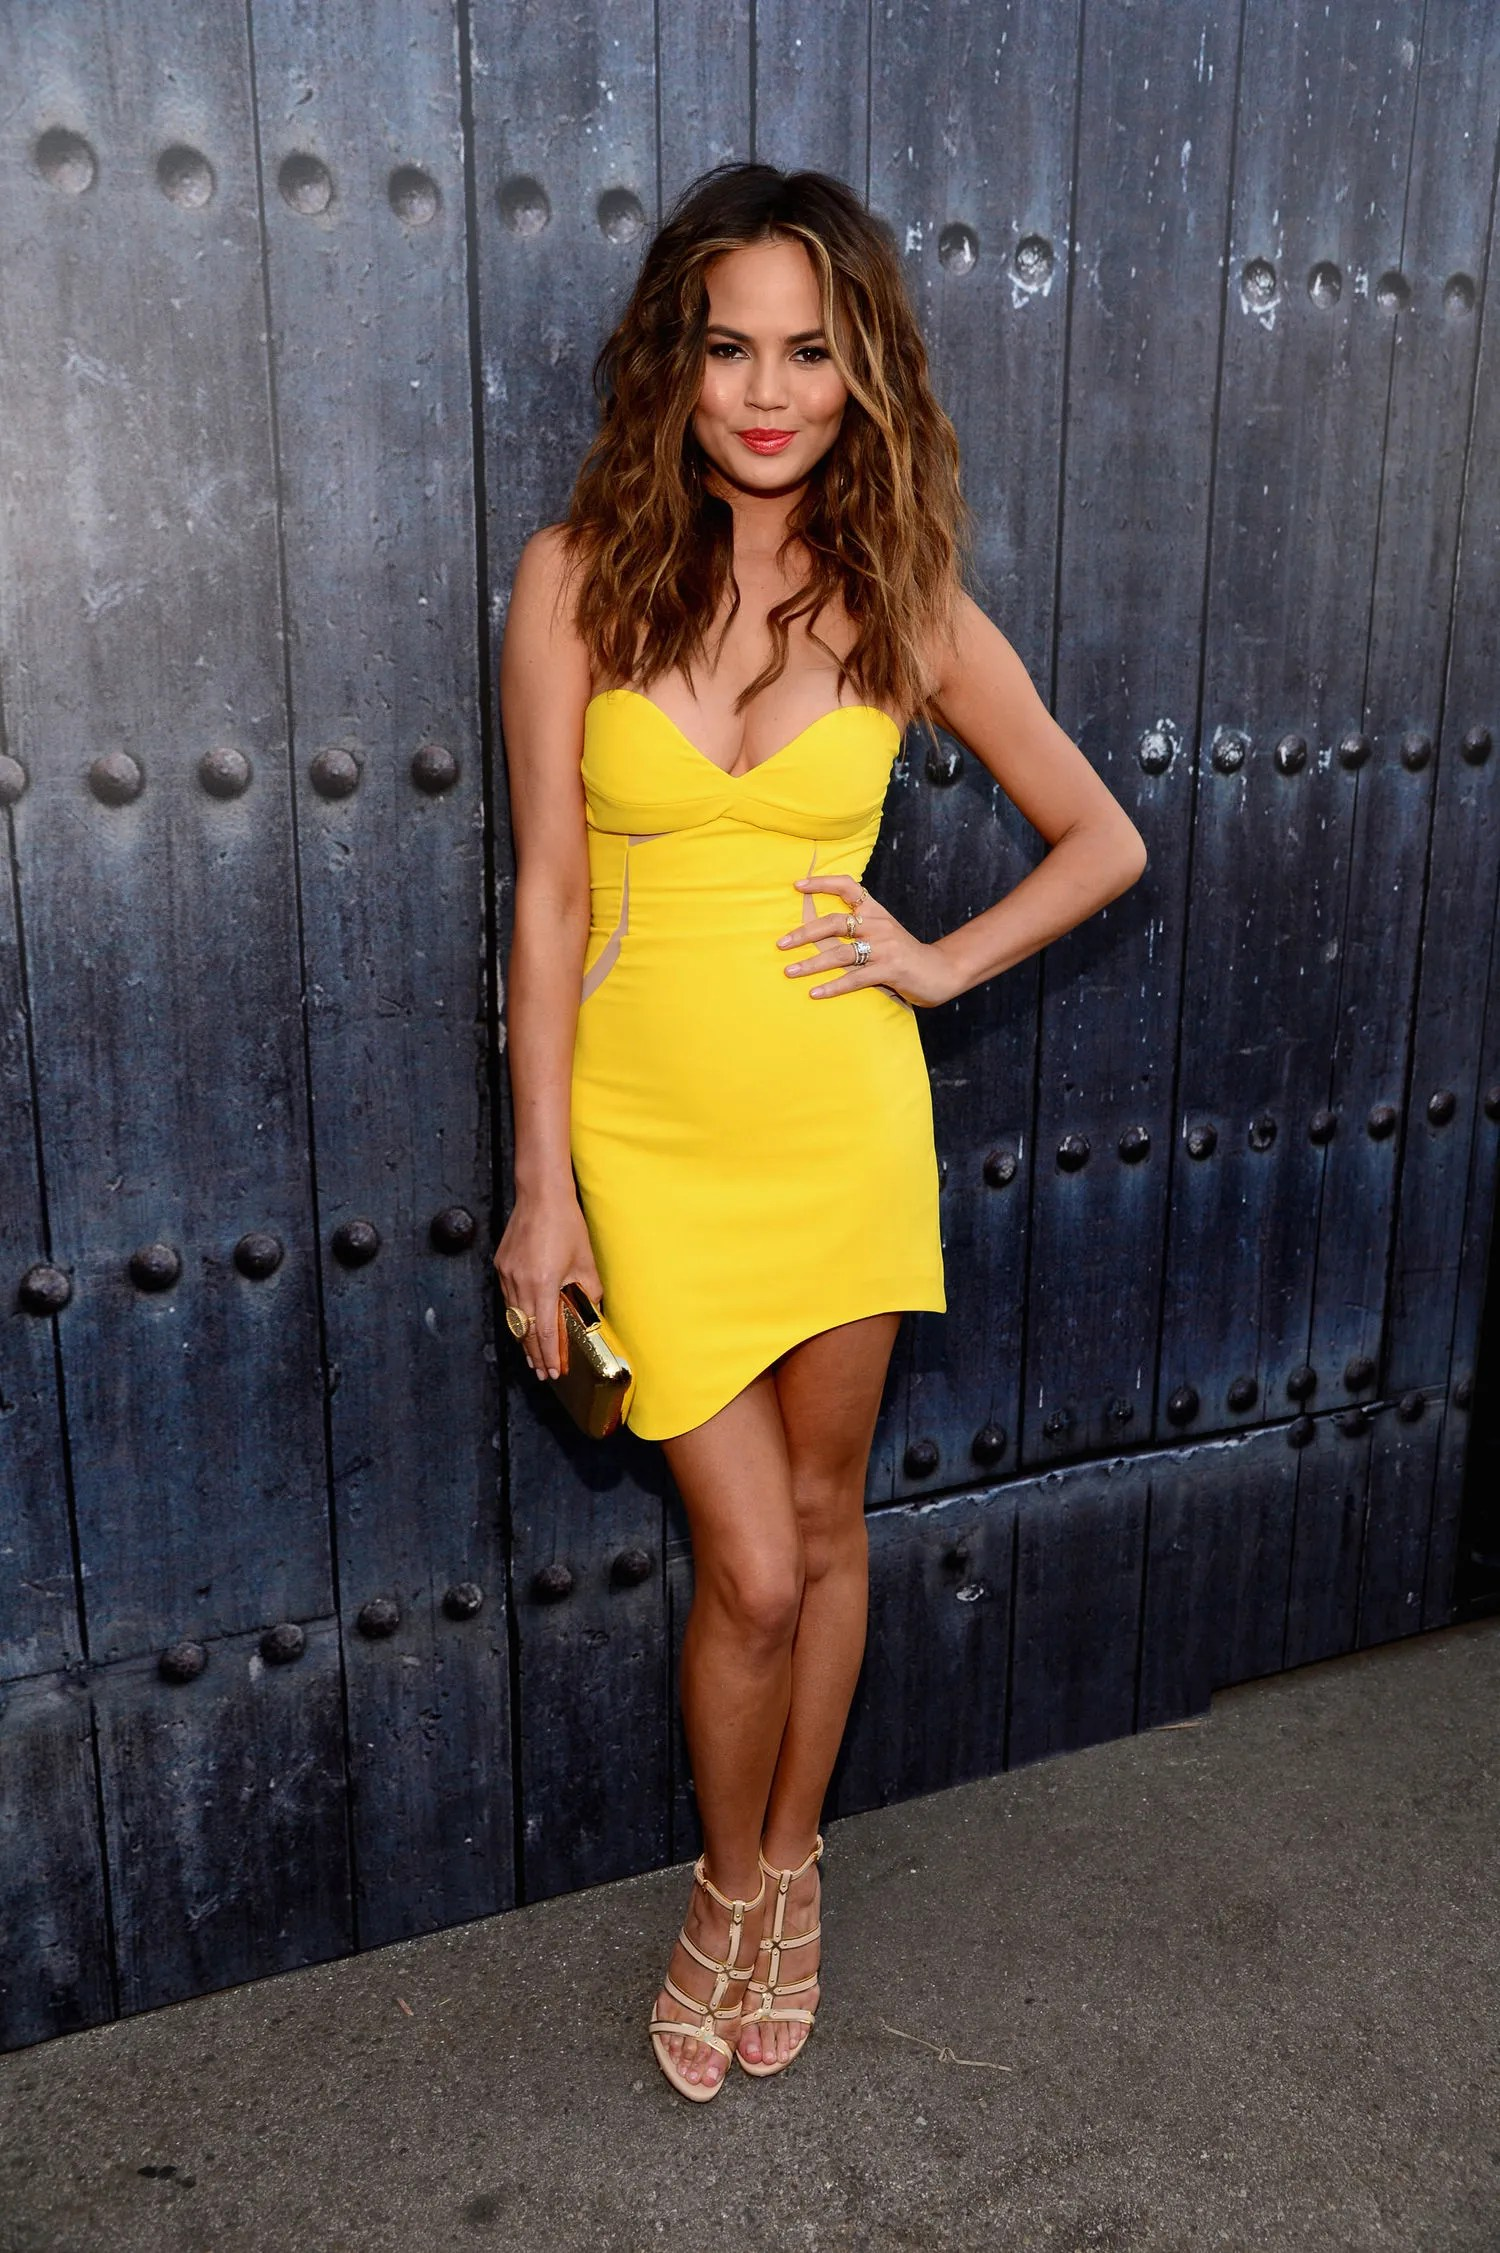 New Car Wallpaper Bloggers Chrissy Teigen S Yellow Three Floor Dress At The Spike Tv